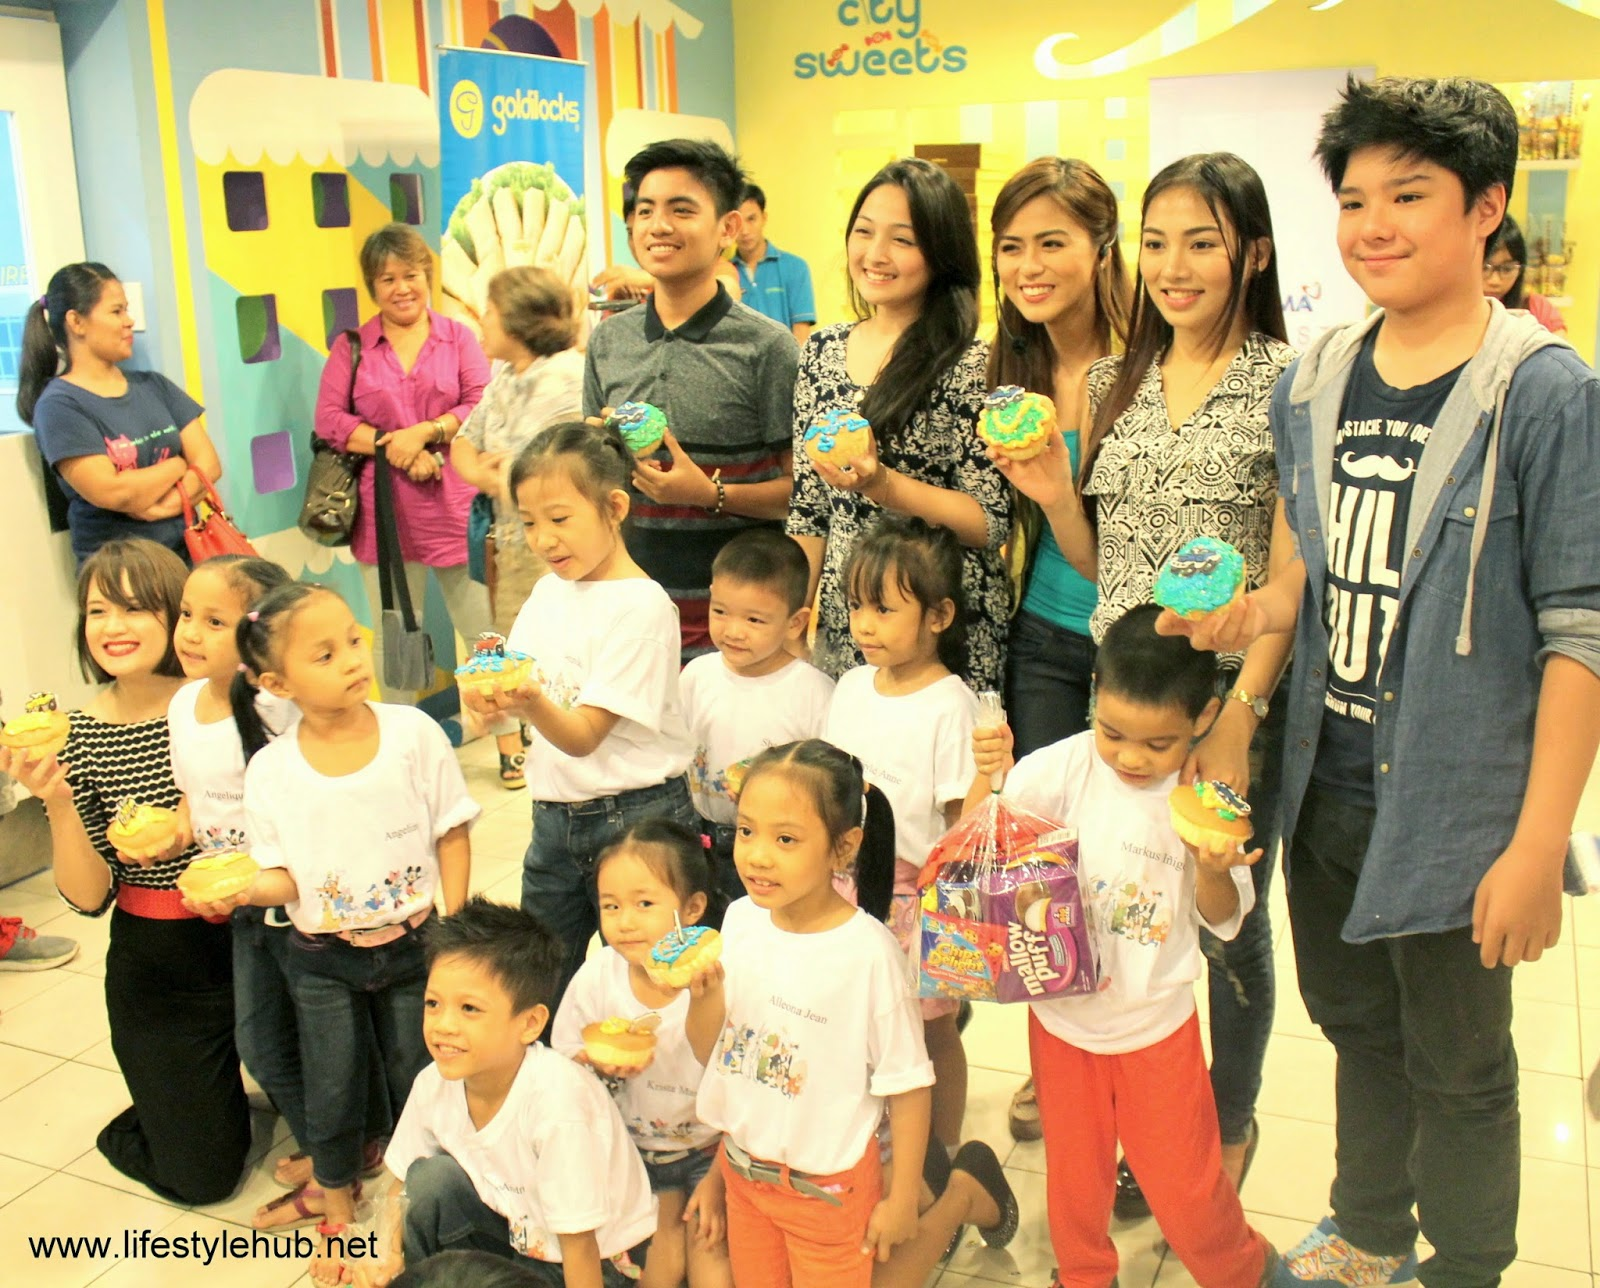 arkin magalona, joanna marie tan, annicka dolonius birthday at goldilocks cake plant